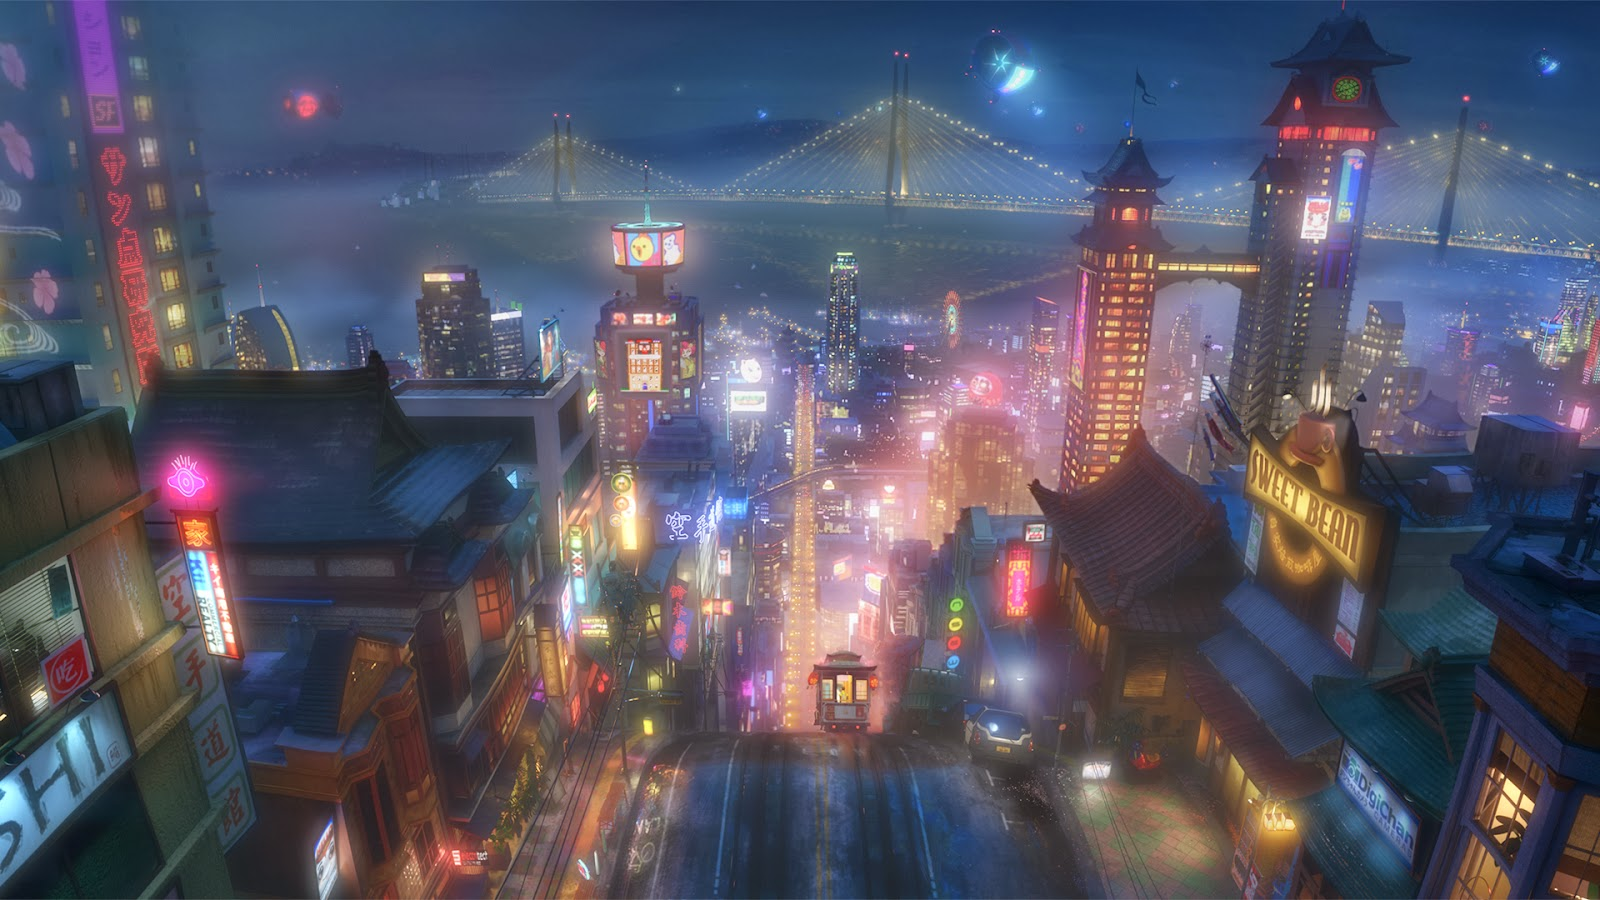 A night view of San Fransokyo, the make-believe home of the Big Hero 6. Source: disney.wikia.com